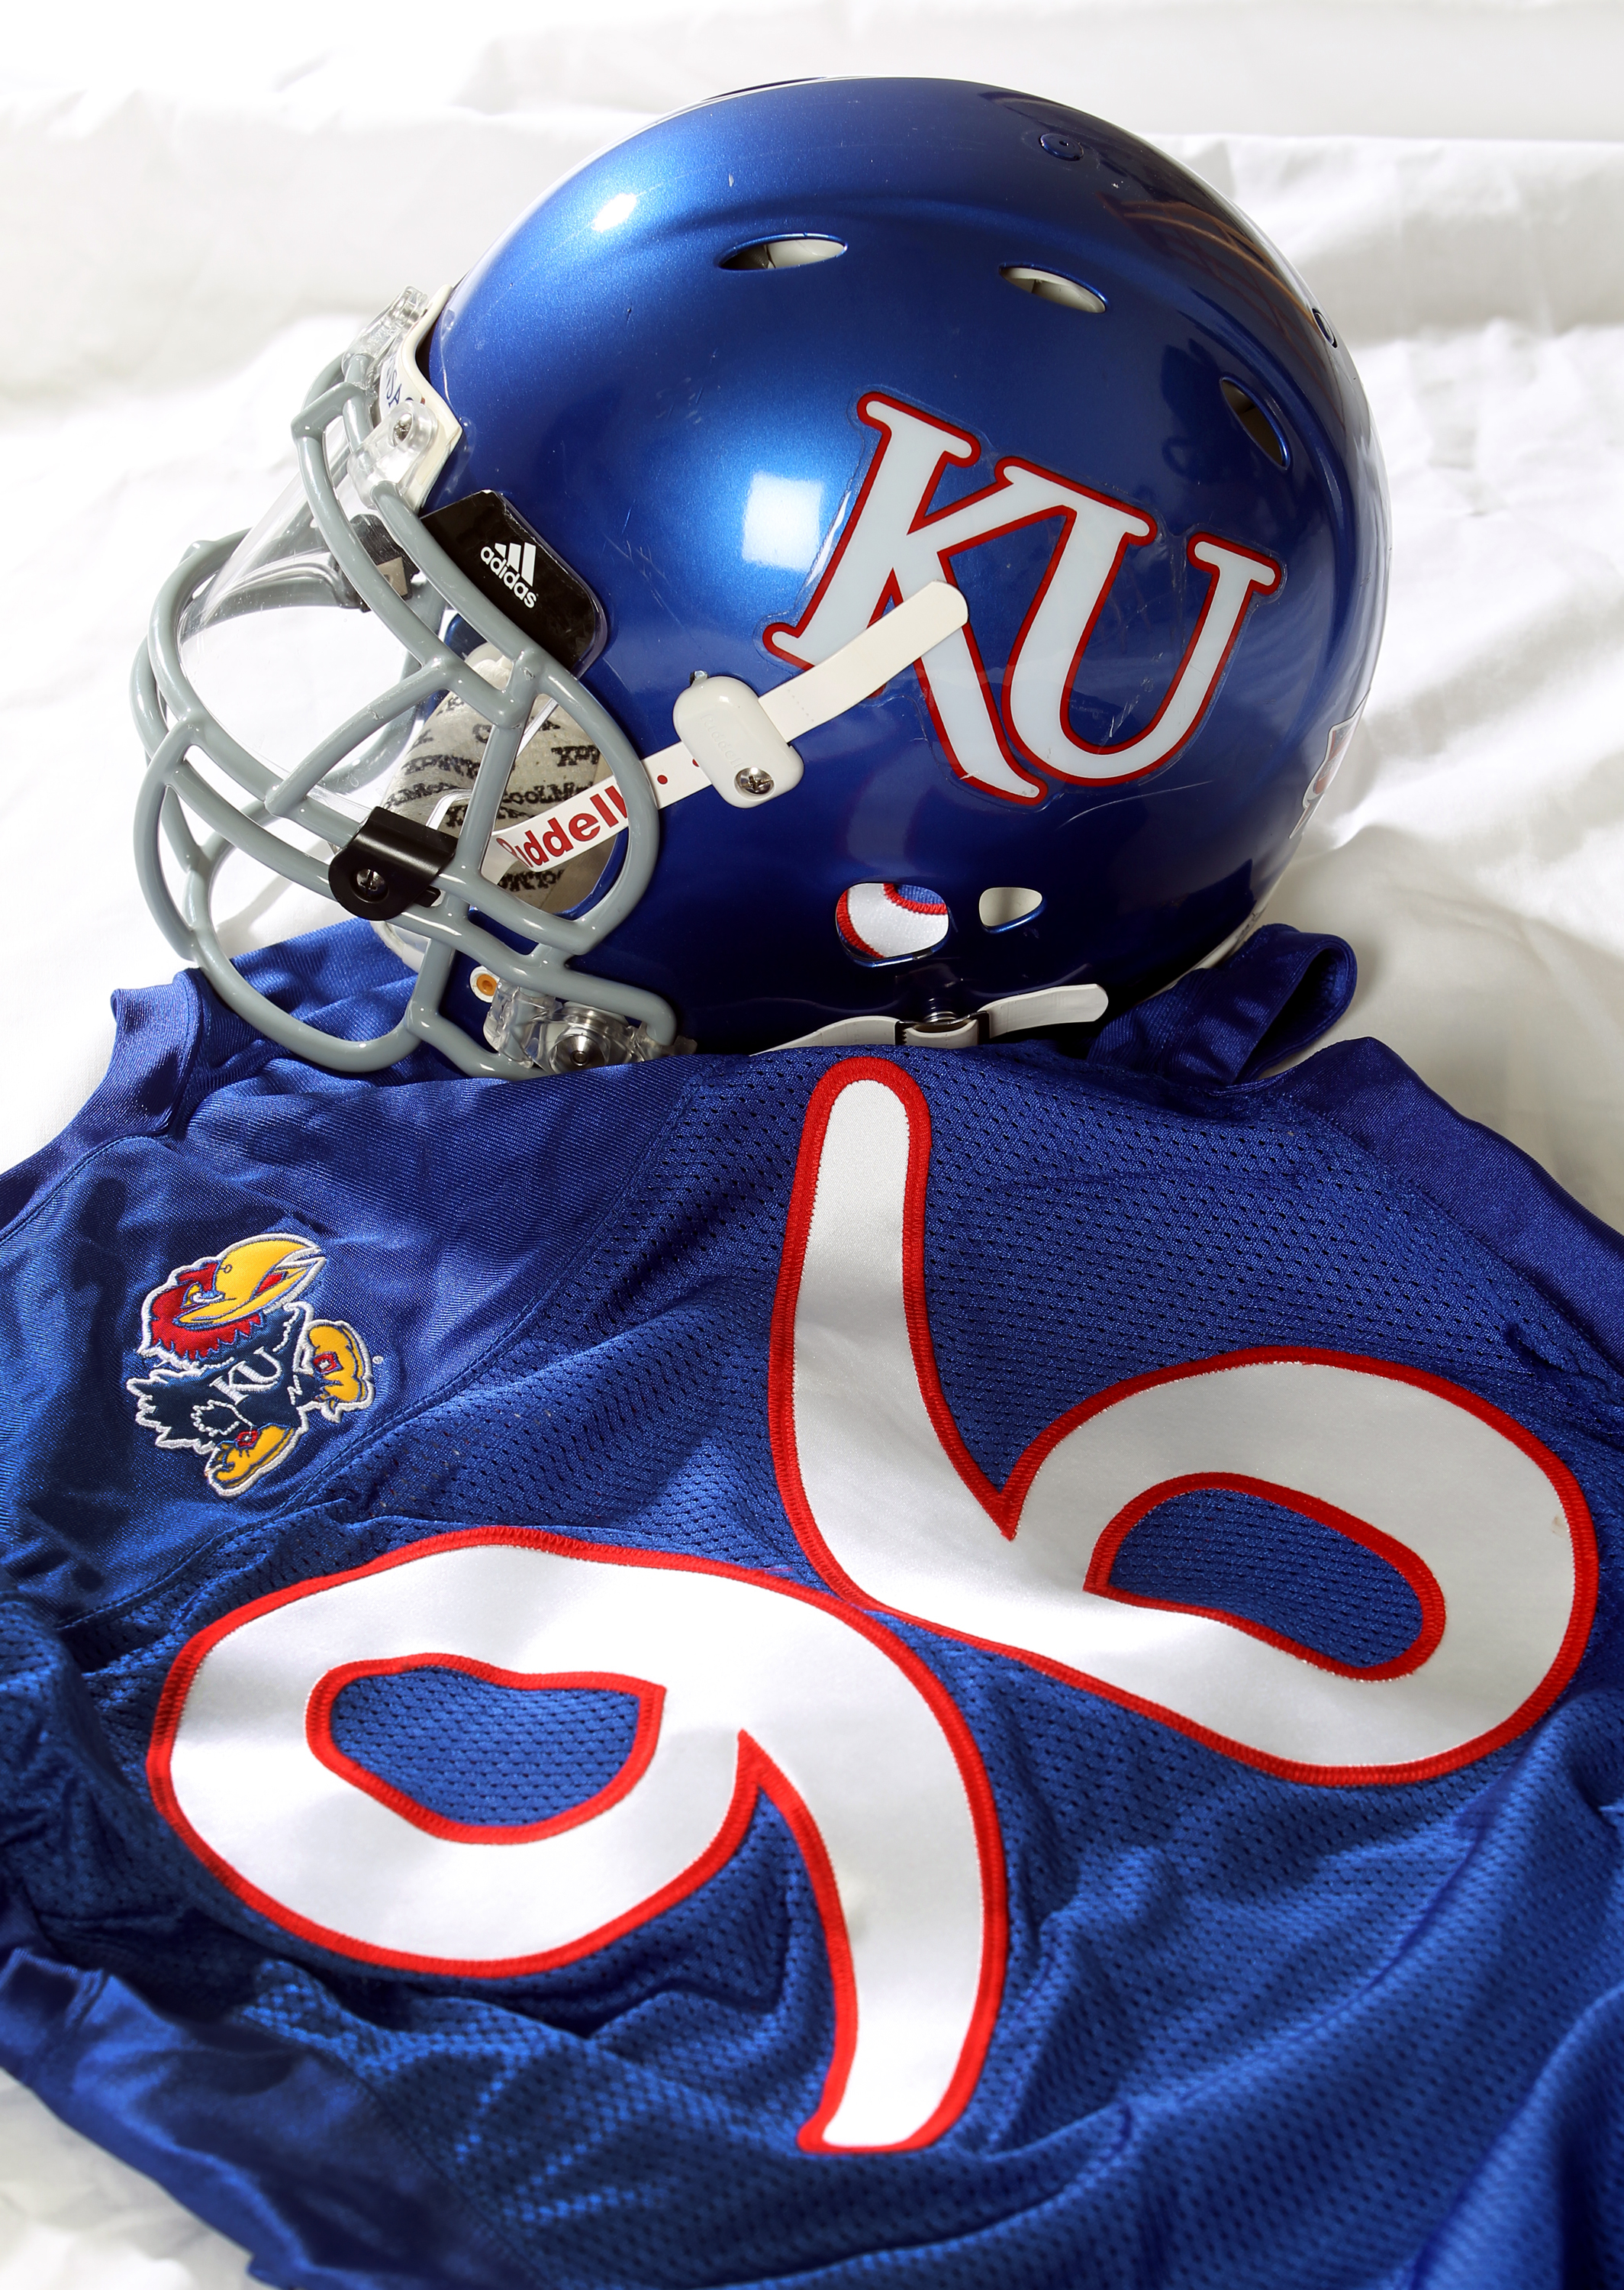 separation shoes 5ea69 dbc62 KU football uniforms to change in 2010 | News, Sports, Jobs ...